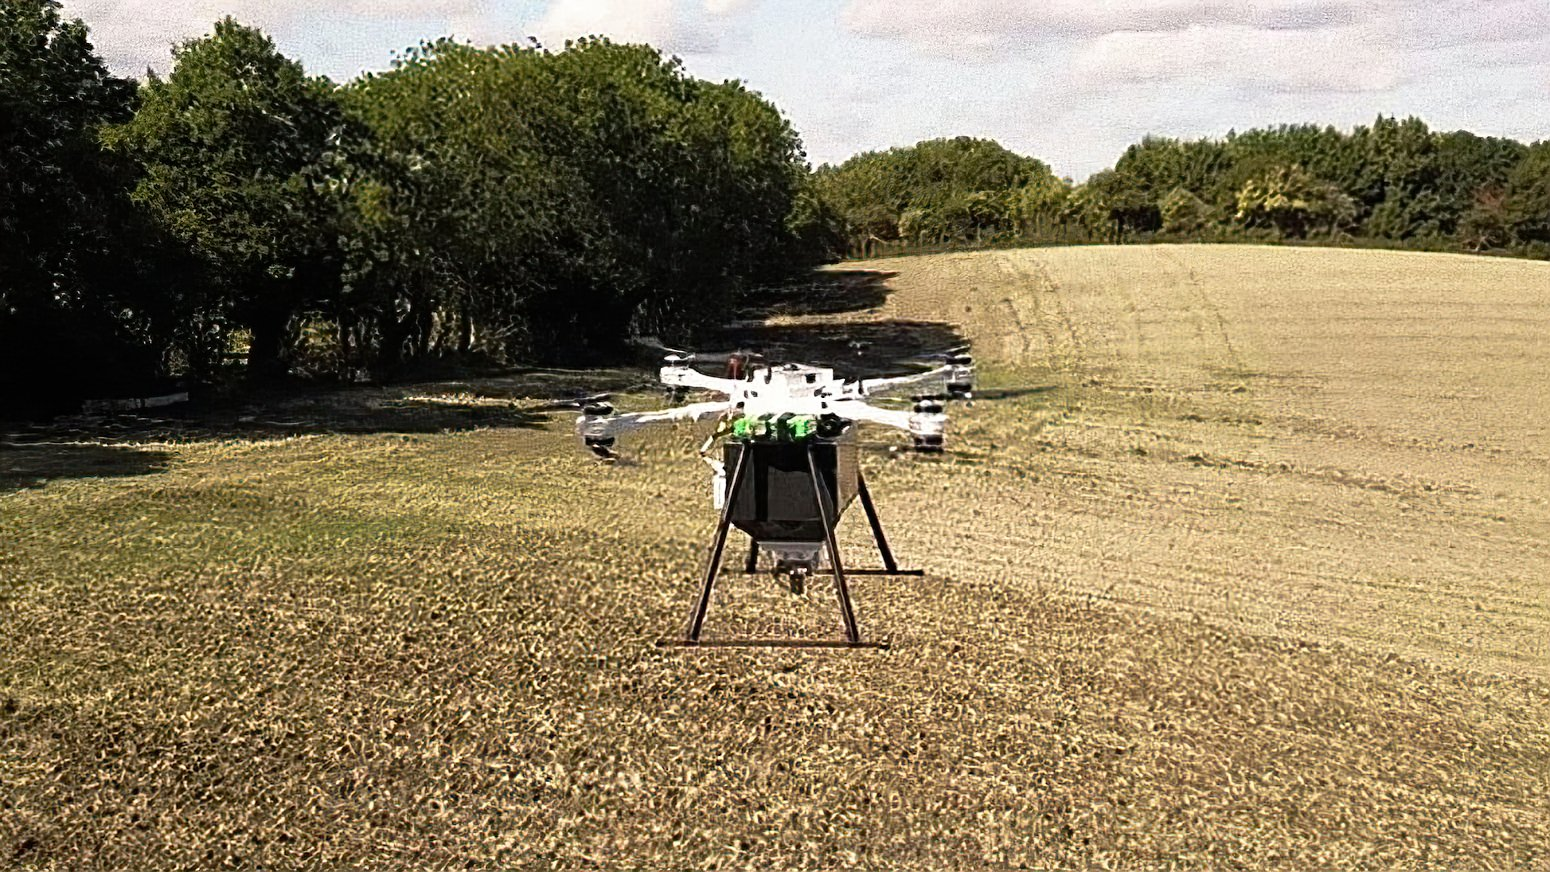 Without drones, planting a billion trees would take a long time